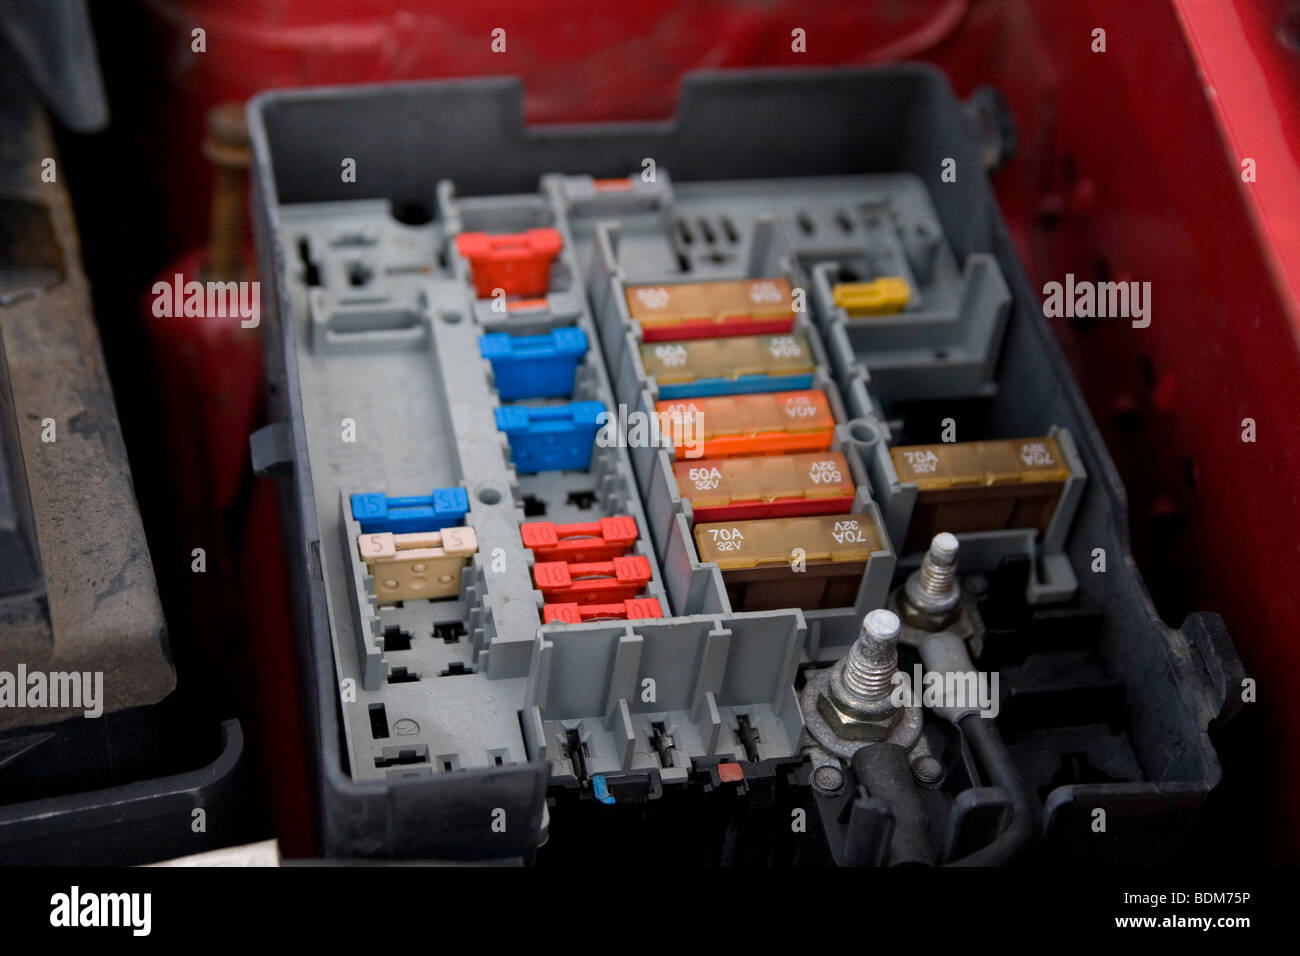 hight resolution of citroen berlingo fuse box stock photo 25645586 alamy citroen fuse box citroen fuse box source fuse box on citroen c4 search wiring diagram